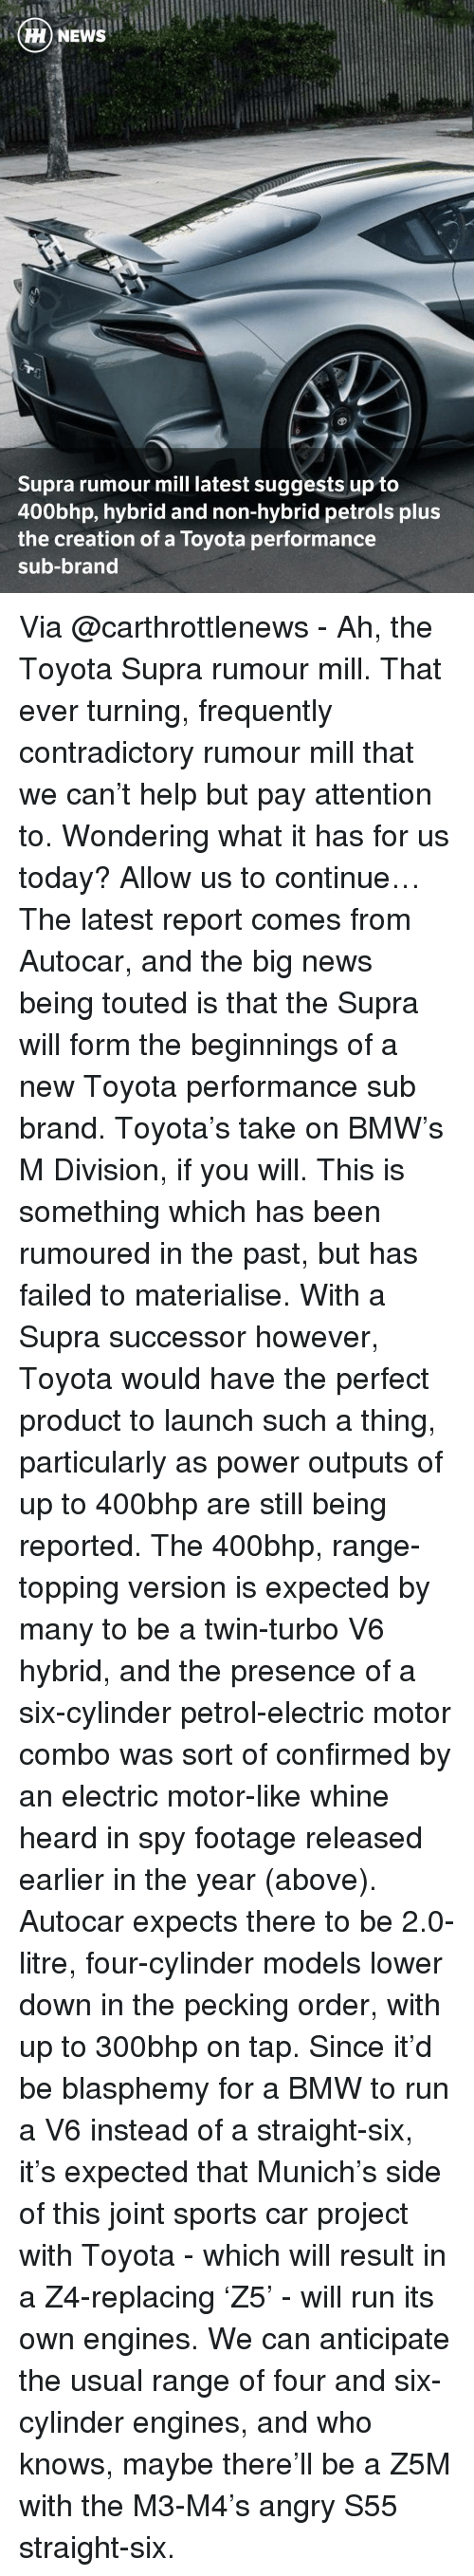 supra: HH NEWS  Supra rumour mill latest suggests up to  400bhp, hybrid and non-hybrid petrols plus  the creation of a Toyota performance  sub-brand Via @carthrottlenews - Ah, the Toyota Supra rumour mill. That ever turning, frequently contradictory rumour mill that we can't help but pay attention to. Wondering what it has for us today? Allow us to continue… The latest report comes from Autocar, and the big news being touted is that the Supra will form the beginnings of a new Toyota performance sub brand. Toyota's take on BMW's M Division, if you will. This is something which has been rumoured in the past, but has failed to materialise. With a Supra successor however, Toyota would have the perfect product to launch such a thing, particularly as power outputs of up to 400bhp are still being reported. The 400bhp, range-topping version is expected by many to be a twin-turbo V6 hybrid, and the presence of a six-cylinder petrol-electric motor combo was sort of confirmed by an electric motor-like whine heard in spy footage released earlier in the year (above). Autocar expects there to be 2.0-litre, four-cylinder models lower down in the pecking order, with up to 300bhp on tap. Since it'd be blasphemy for a BMW to run a V6 instead of a straight-six, it's expected that Munich's side of this joint sports car project with Toyota - which will result in a Z4-replacing 'Z5' - will run its own engines. We can anticipate the usual range of four and six-cylinder engines, and who knows, maybe there'll be a Z5M with the M3-M4's angry S55 straight-six.